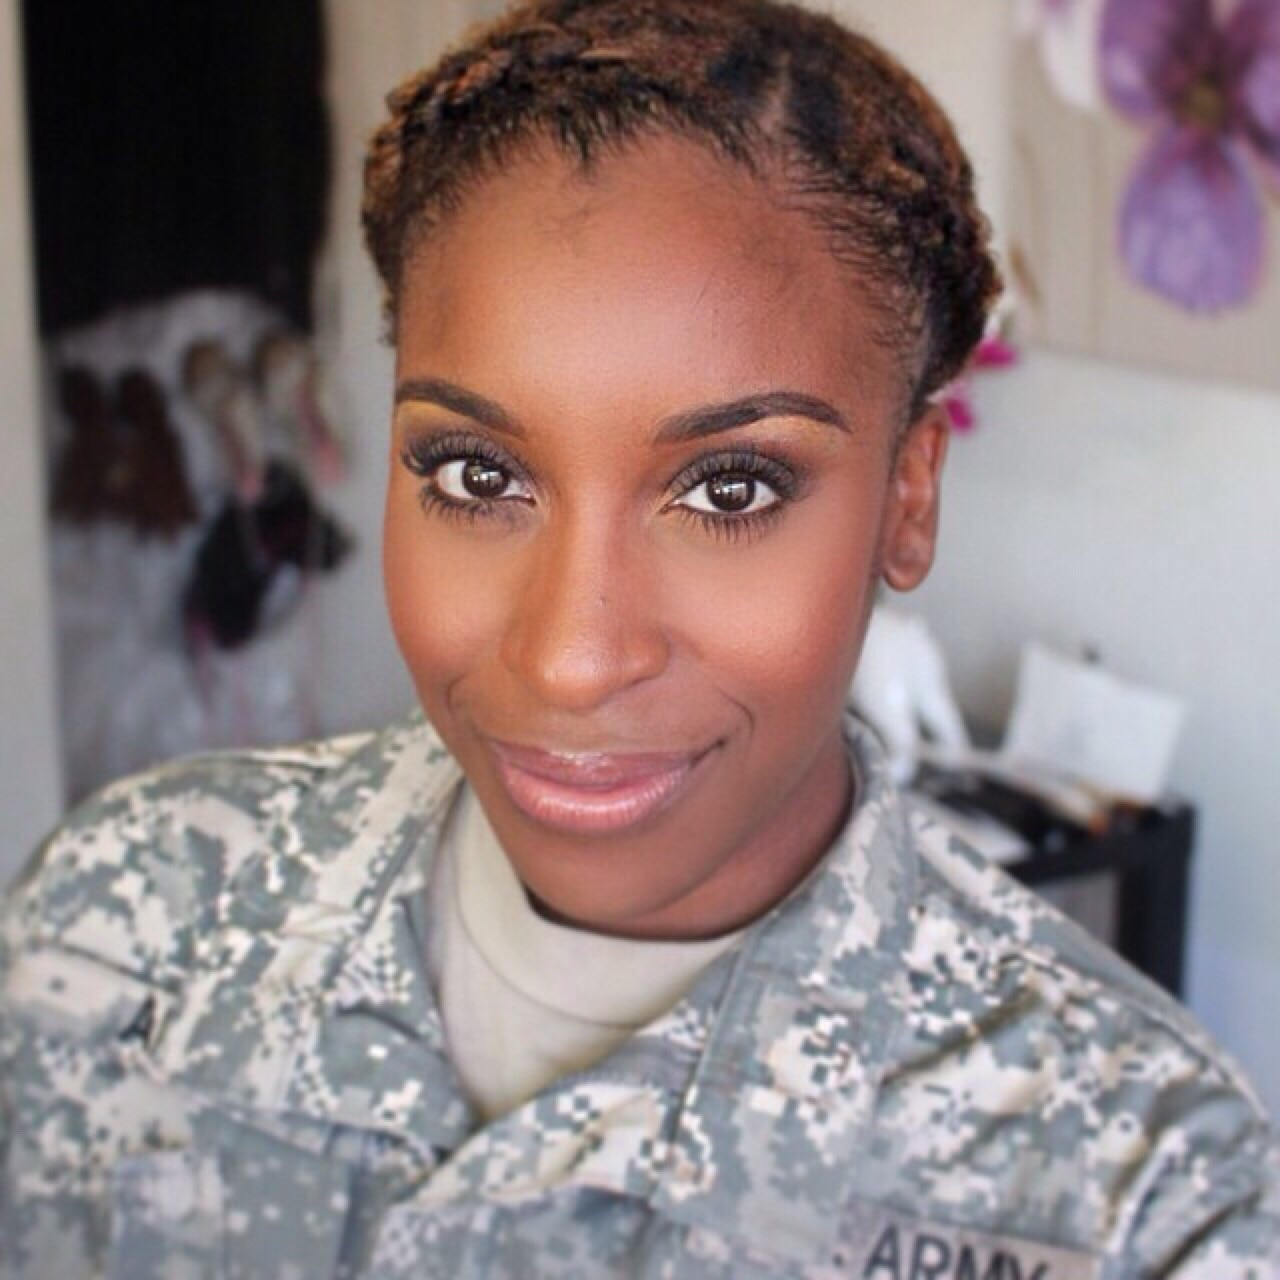 Female soldier in camouflage uniform poses for a selfie.